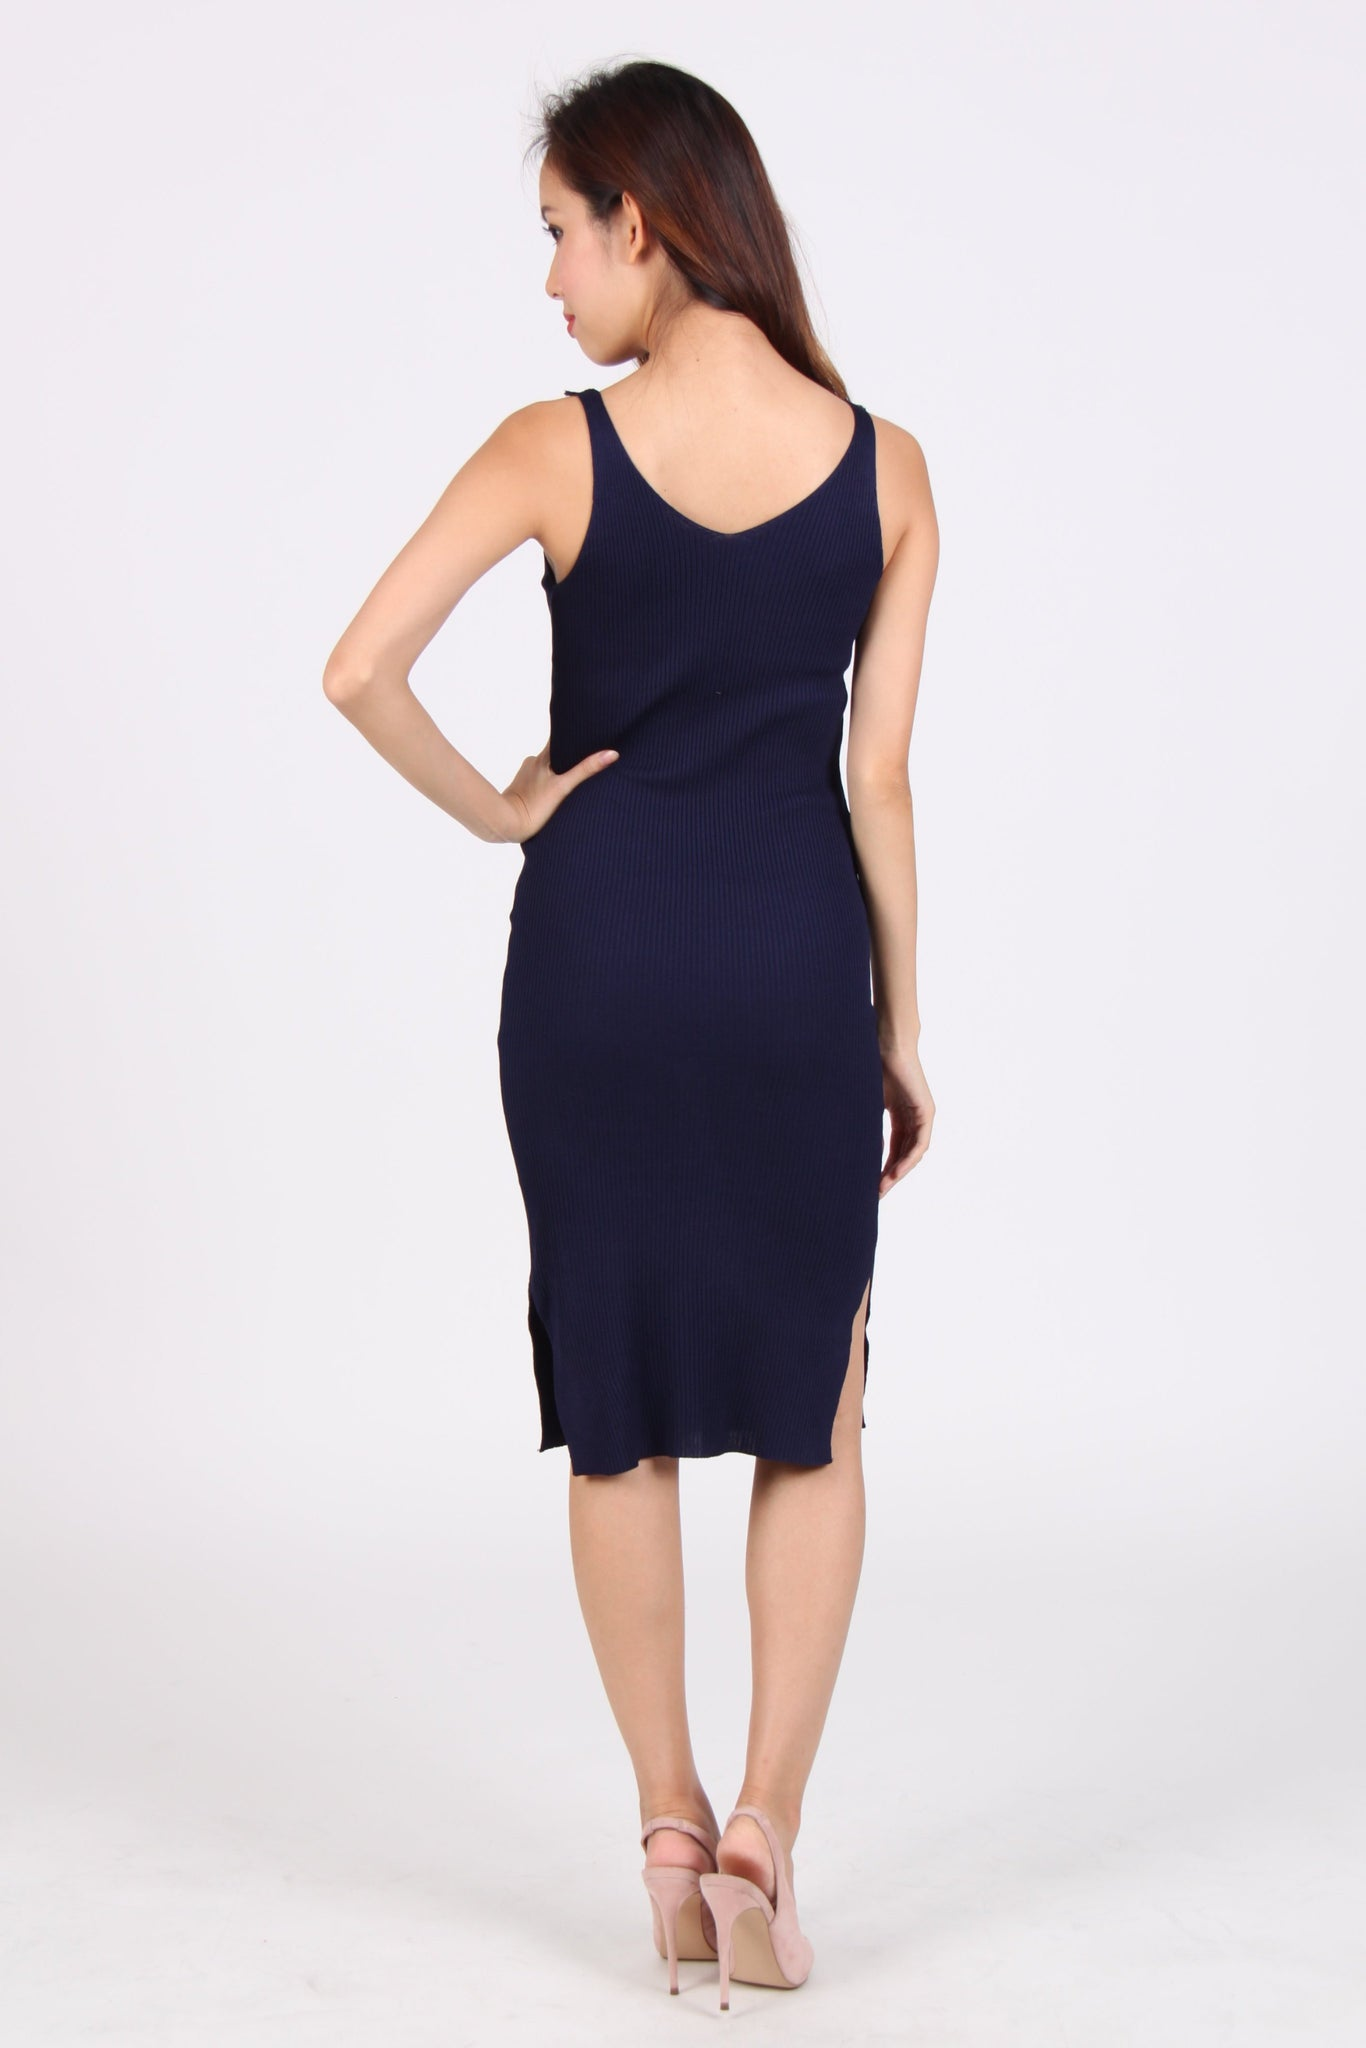 Front Zip Side Slit Bodycon Midi Dress in Navy Blue